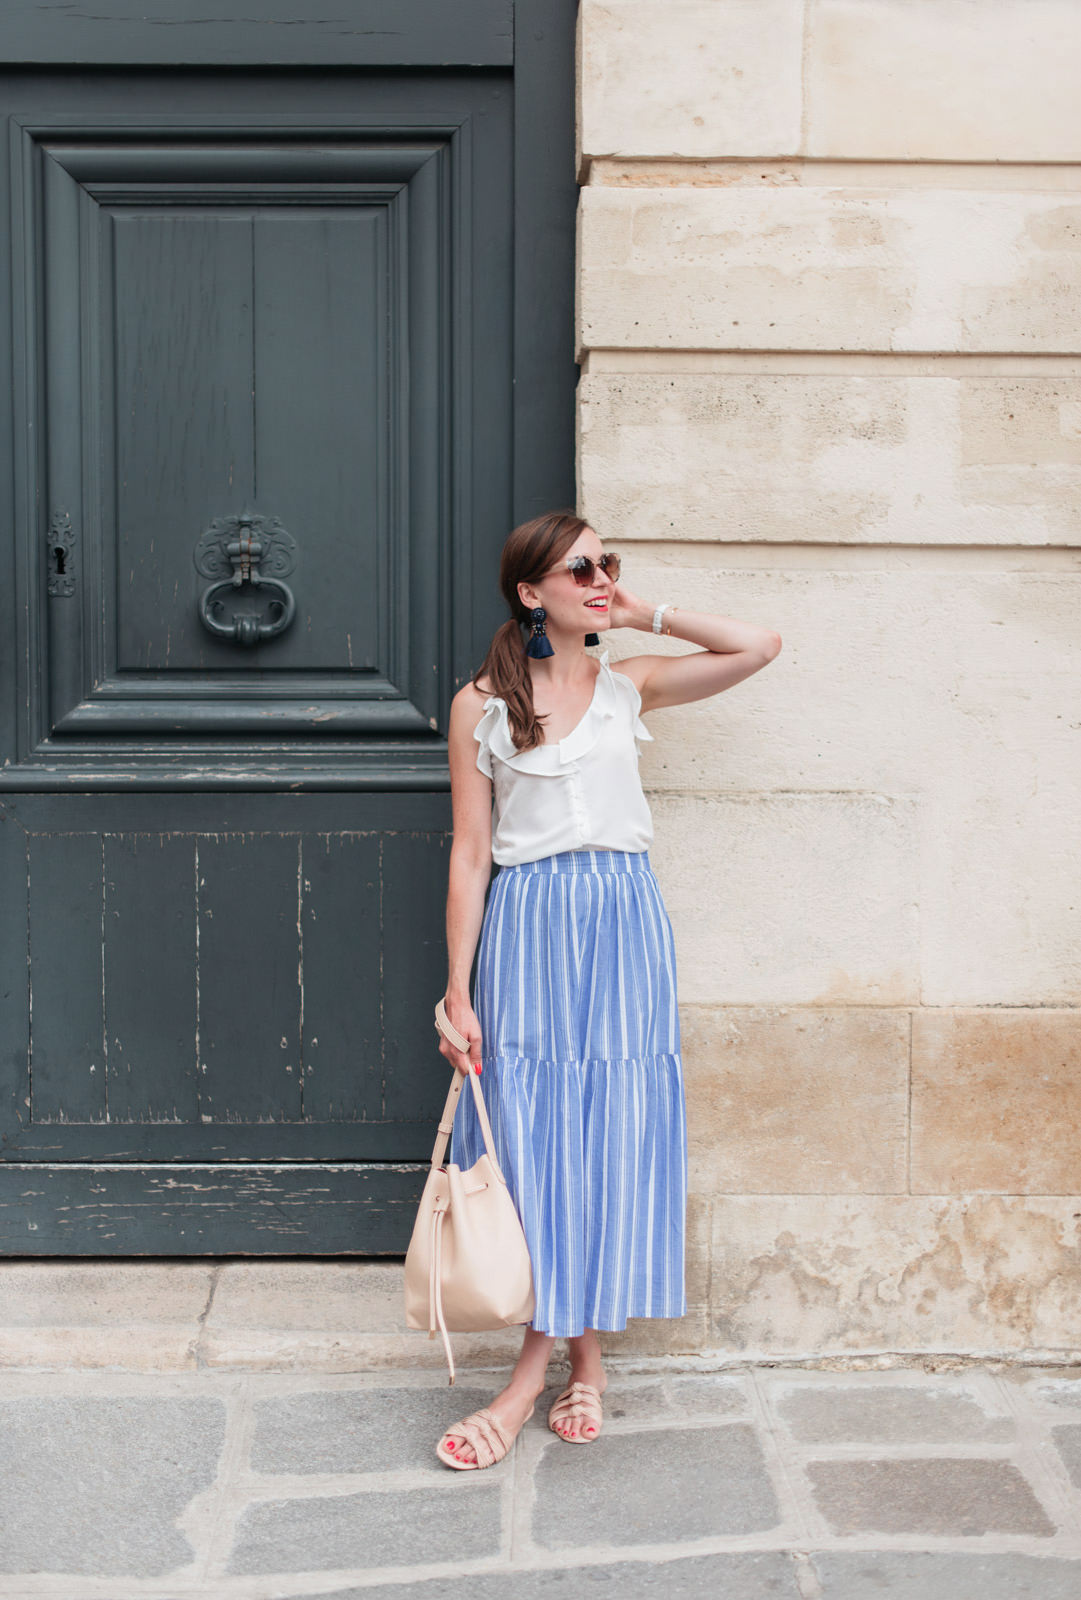 Blog-Mode-And-The-City-Looks-l-ete-en-jupe-longue-3